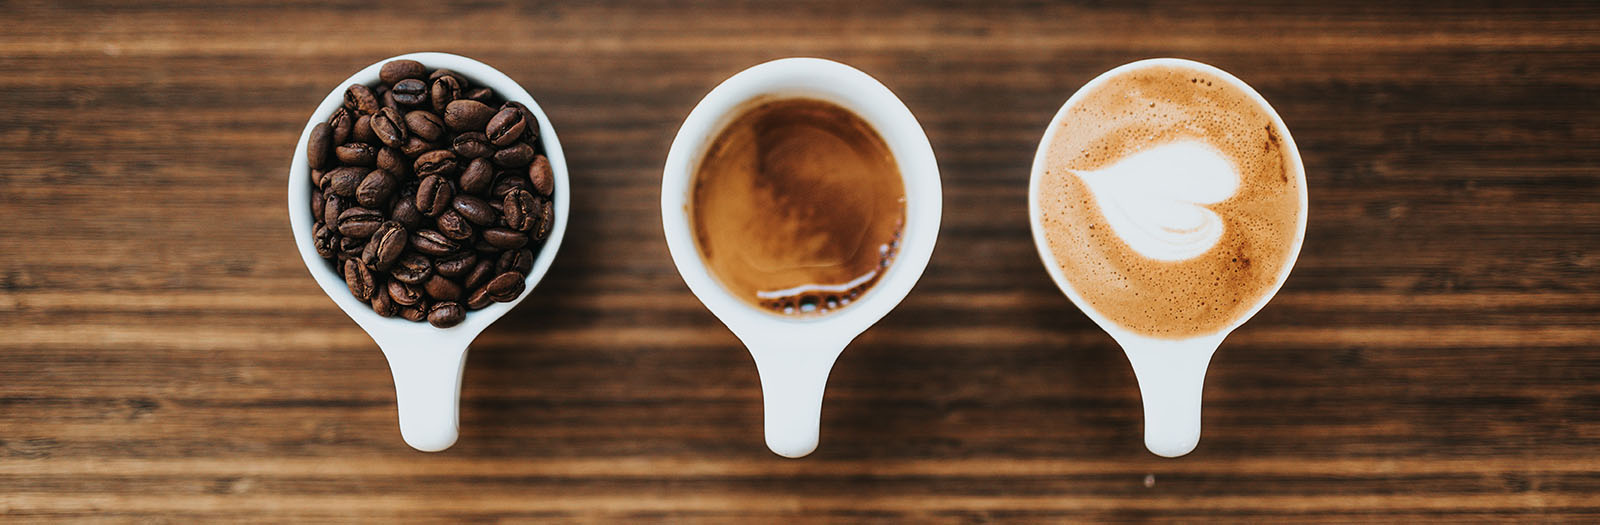 image of three cups containing coffee beans, espresso and cappuccino